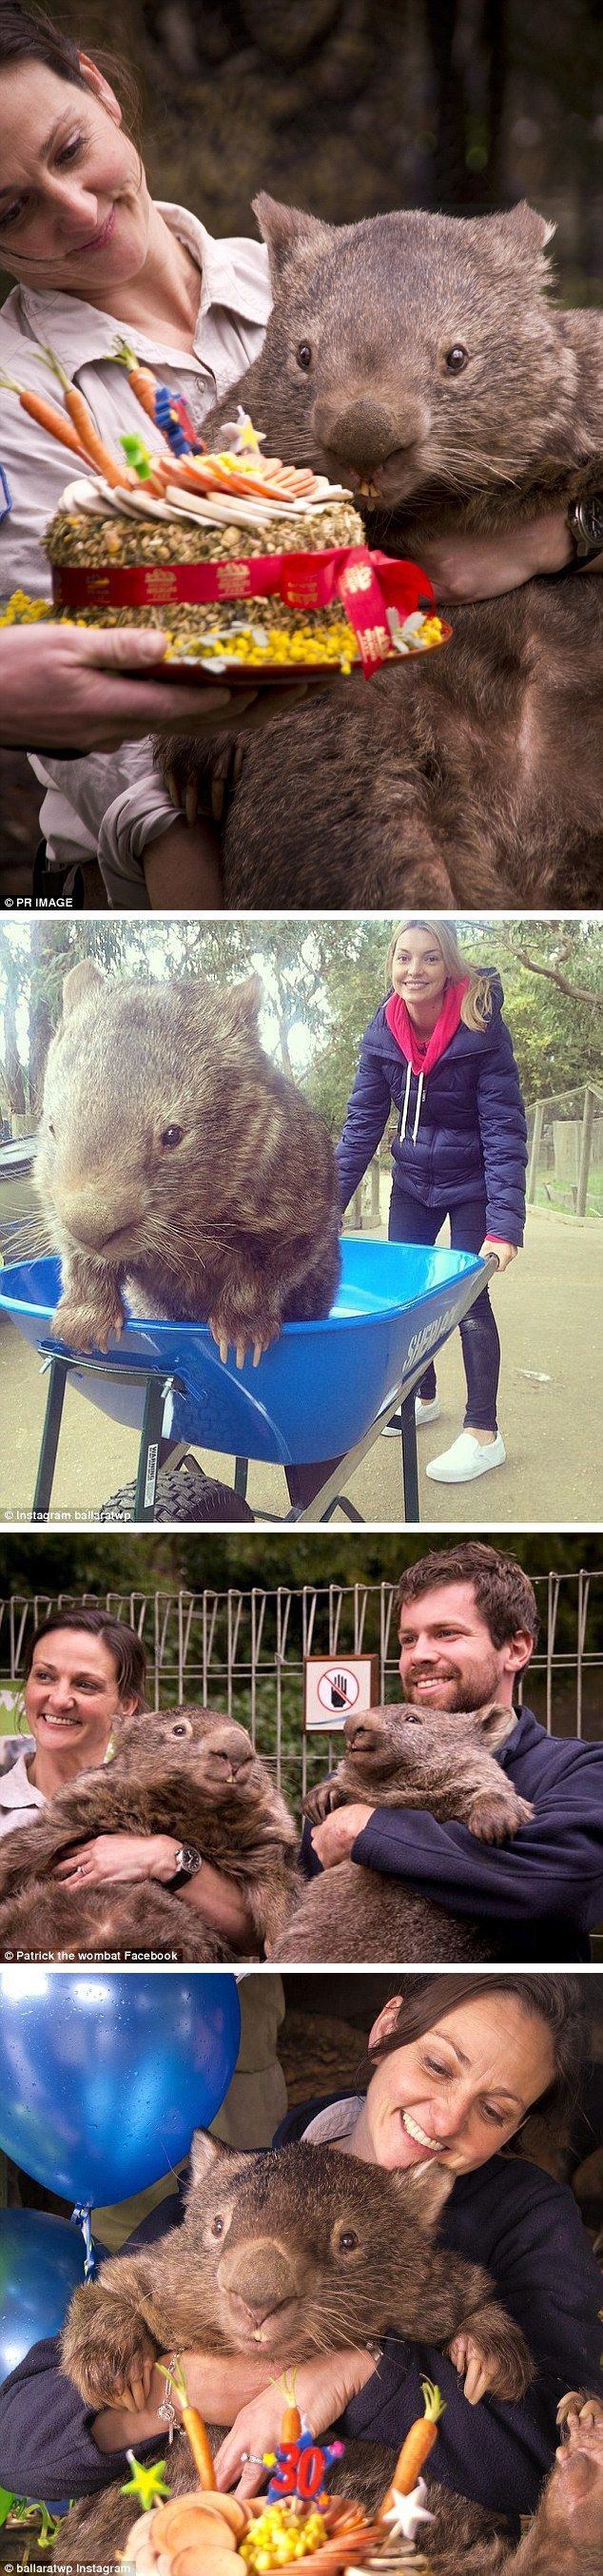 Wombats are so cute… and this one has my name: Patrick the world's oldest wombat celebrates his 30th birthday